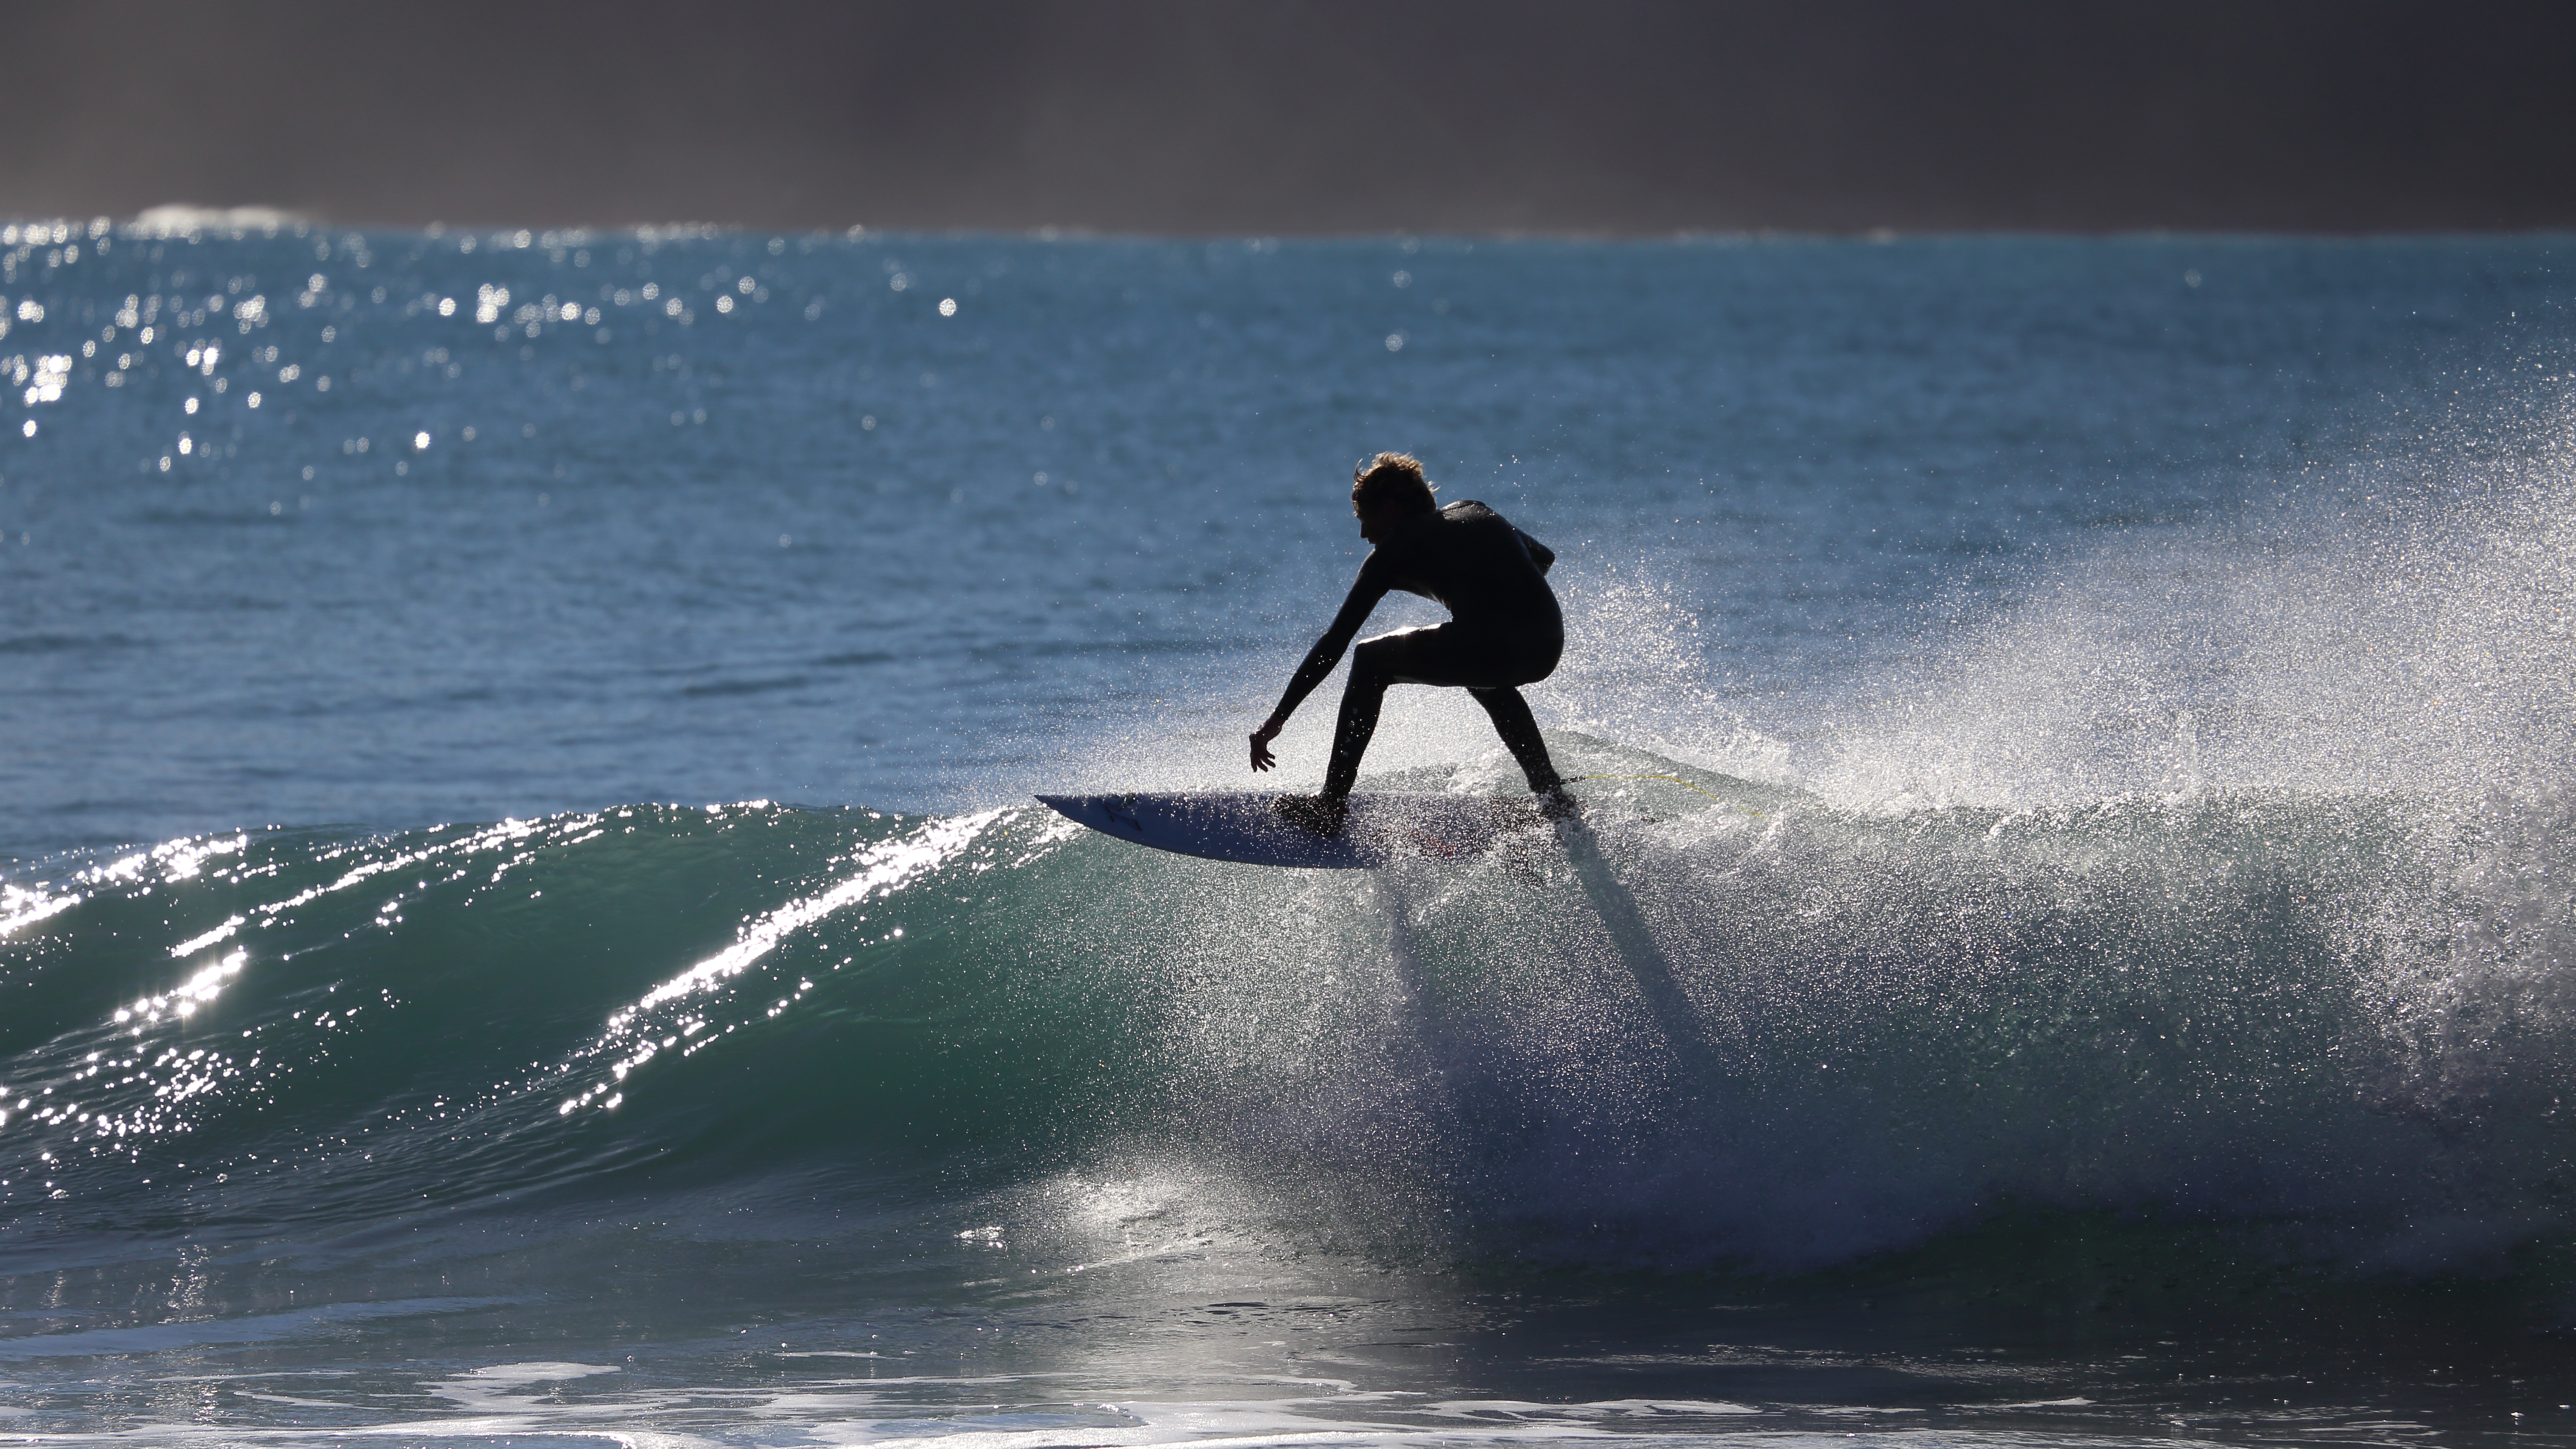 Heading home along the coast of the South Island, some surfers from Raglan where here trying out these breaks and with the early morning sun on the water, too glorious to drive by.